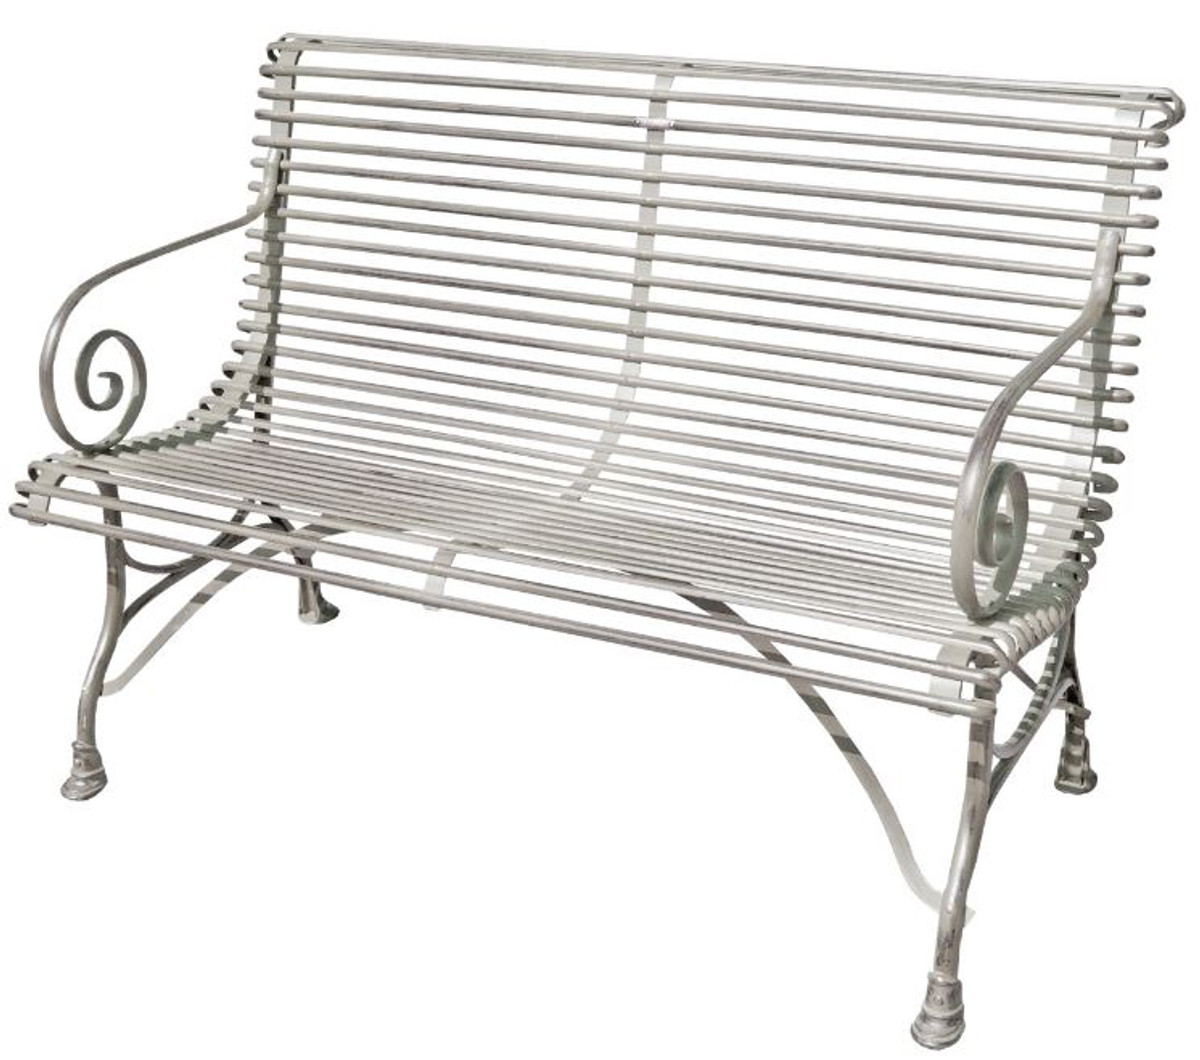 Miraculous Casa Padrino 2 Seater Garden Bench Vintage Wrought Iron Ibusinesslaw Wood Chair Design Ideas Ibusinesslaworg